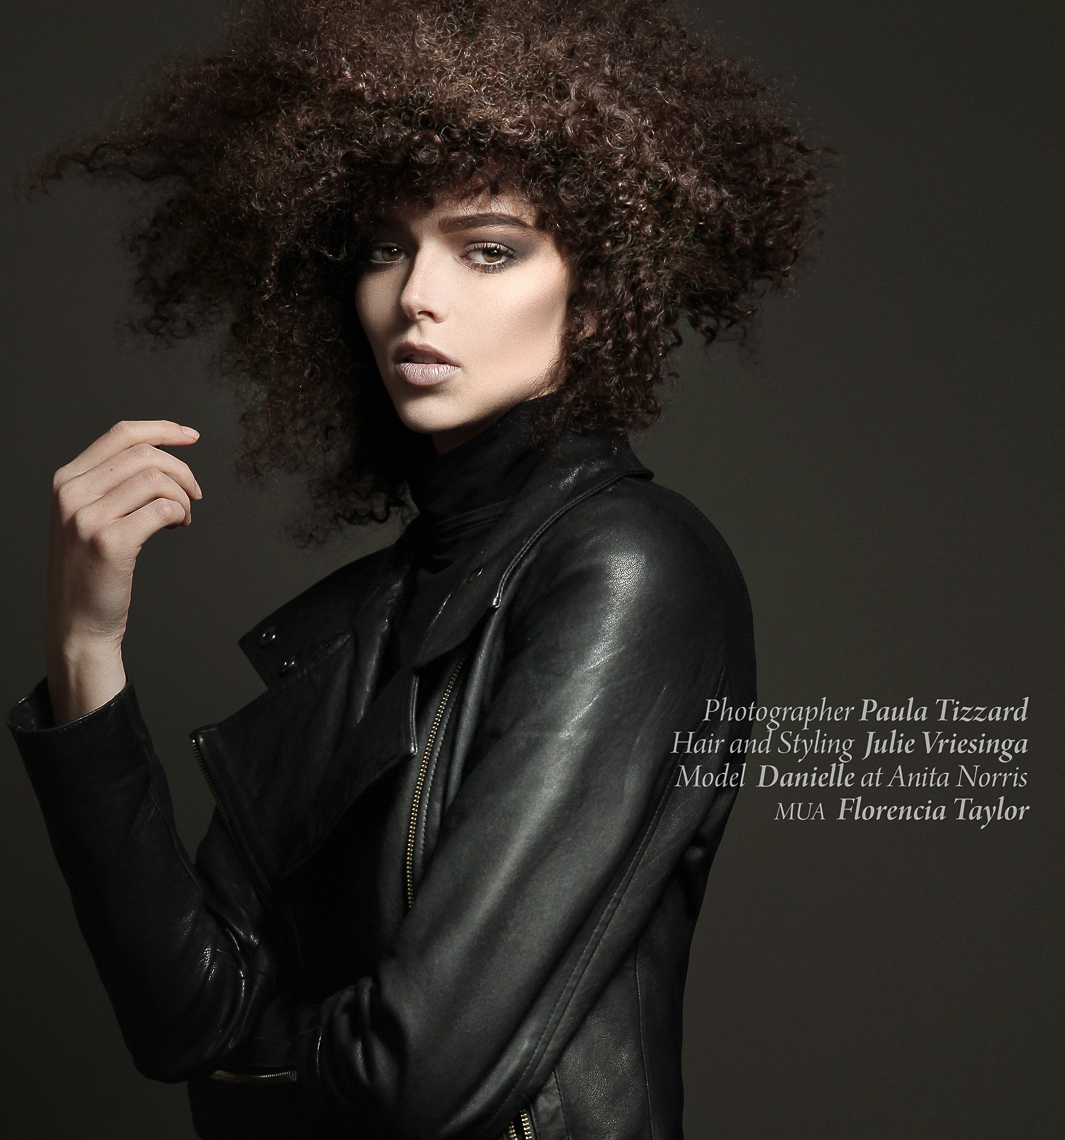 web_rock-hair-texture-competition-contessa-salon52-mirror-vriesinga-tizzard-beauty-fashion-photogaphers-london-toronto